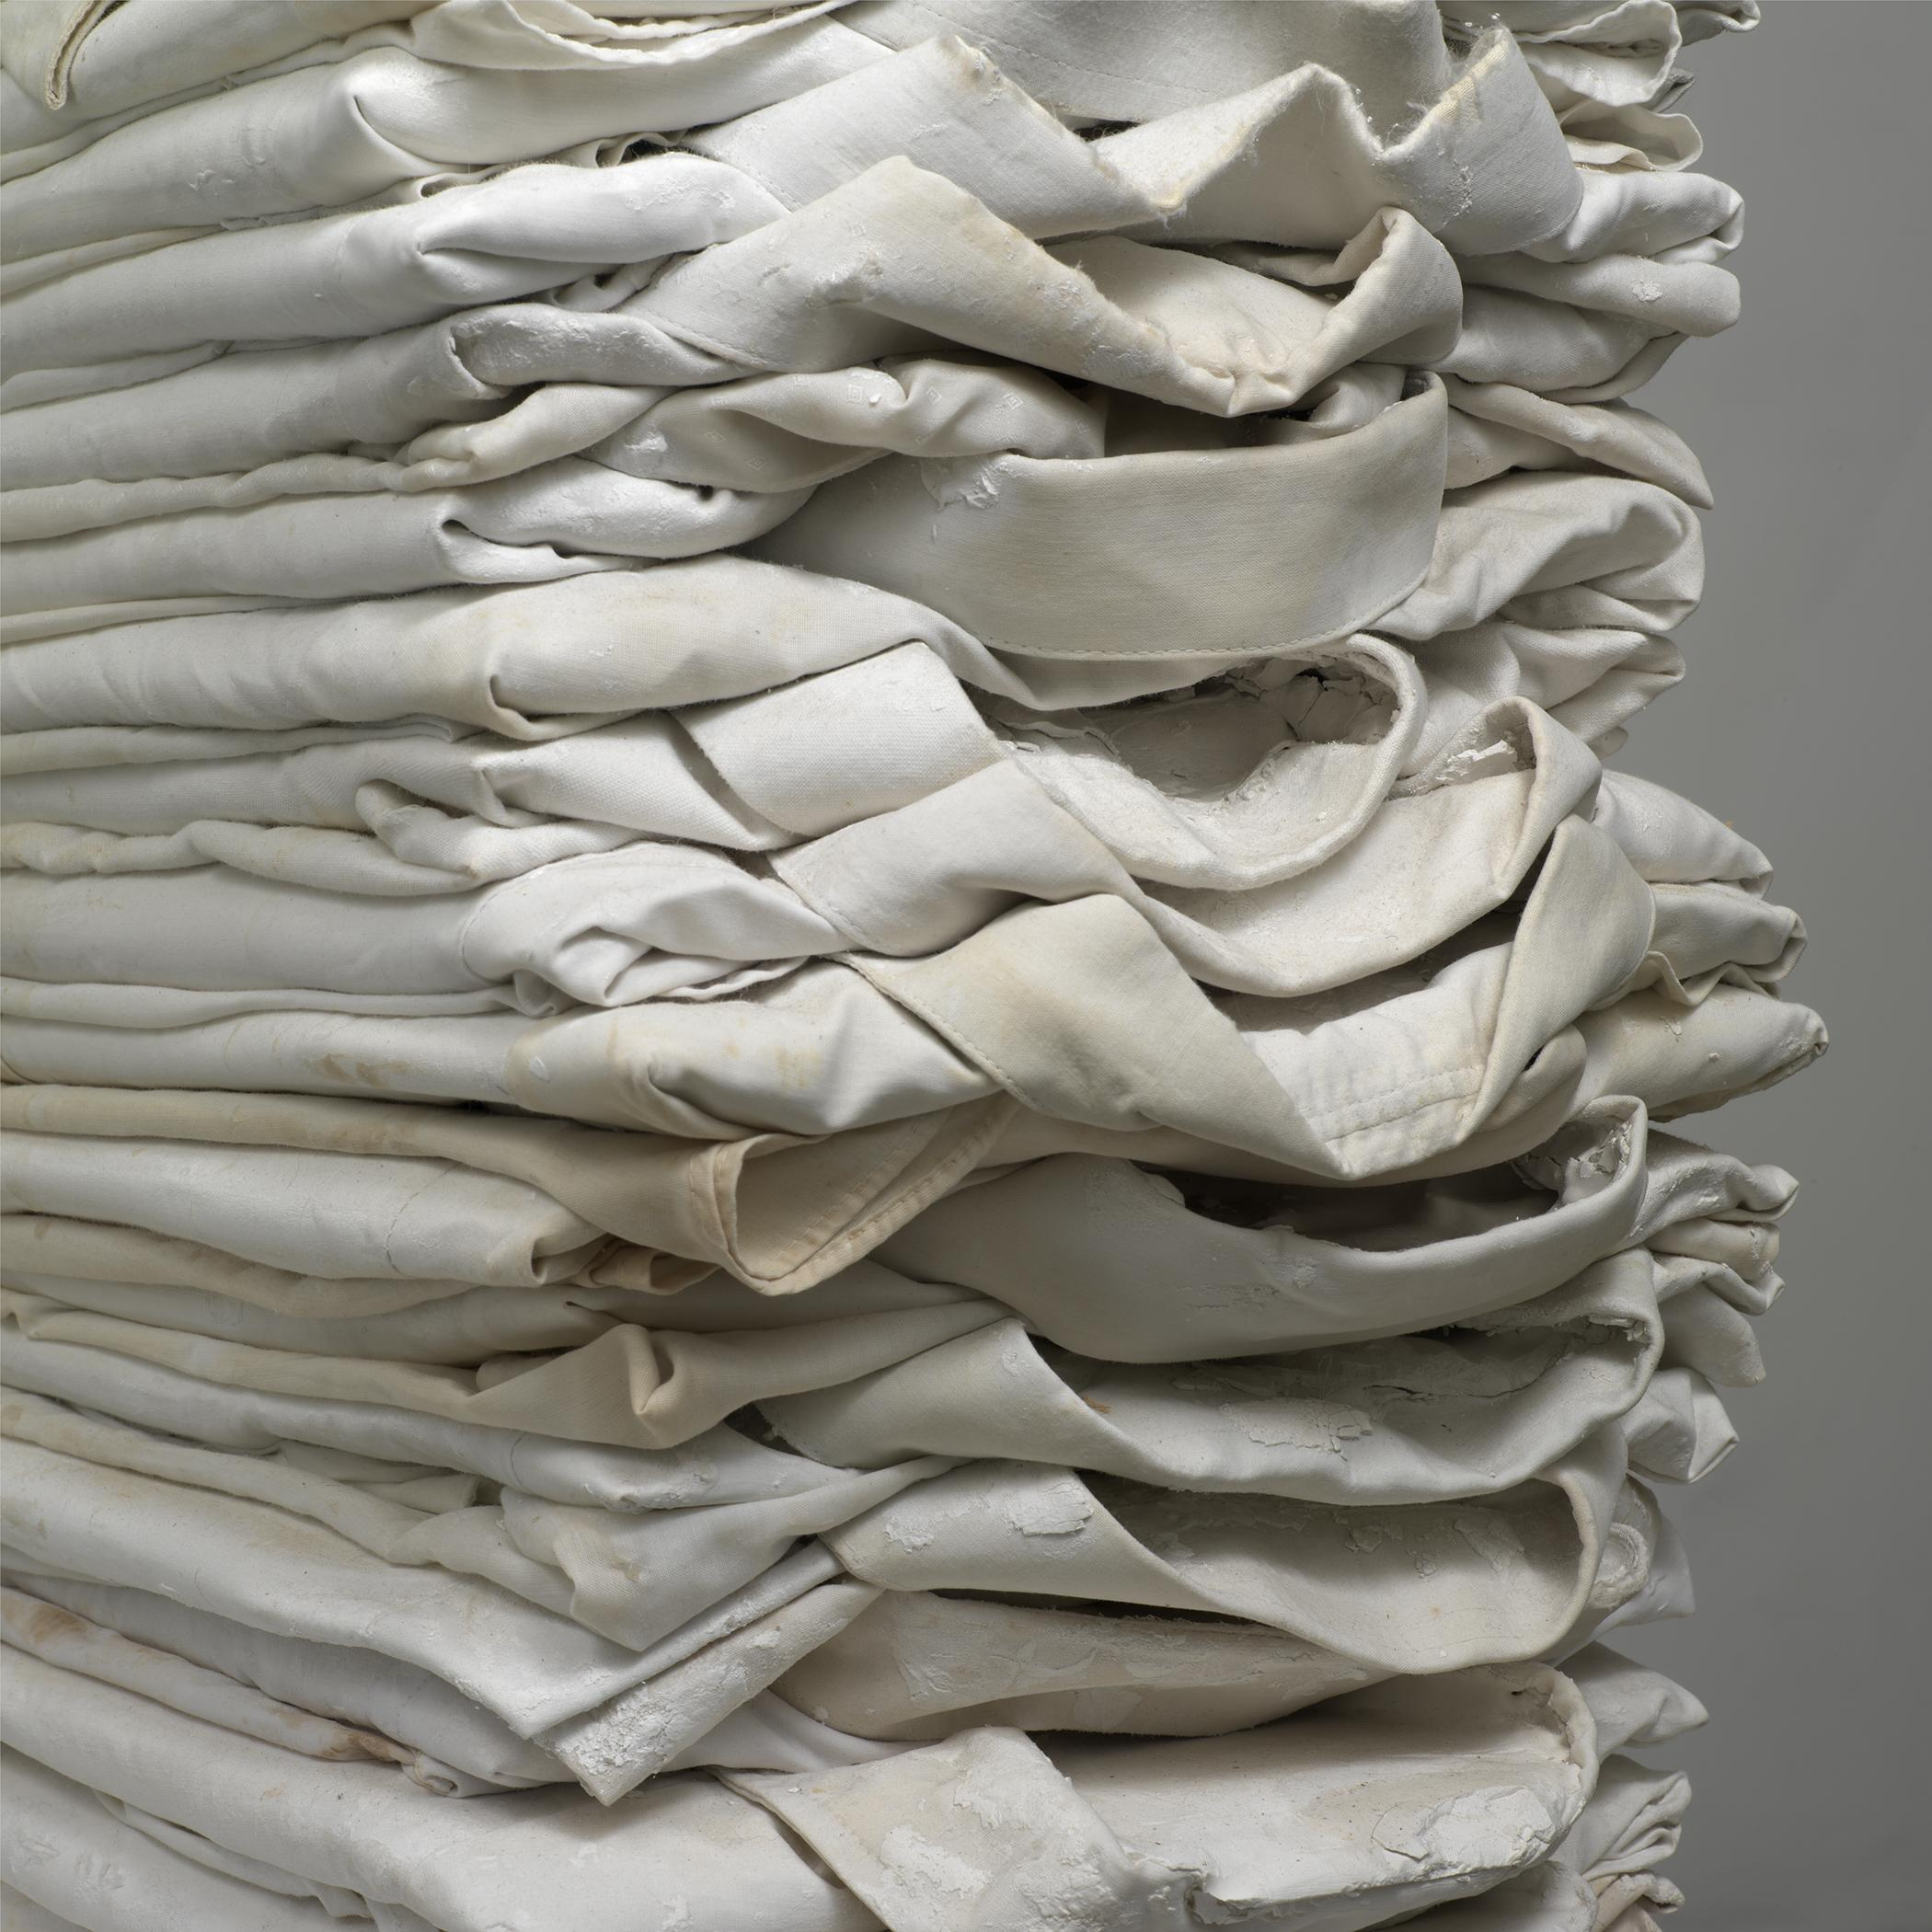 Soiled white dress shirts are folded and stacked on top of one another.